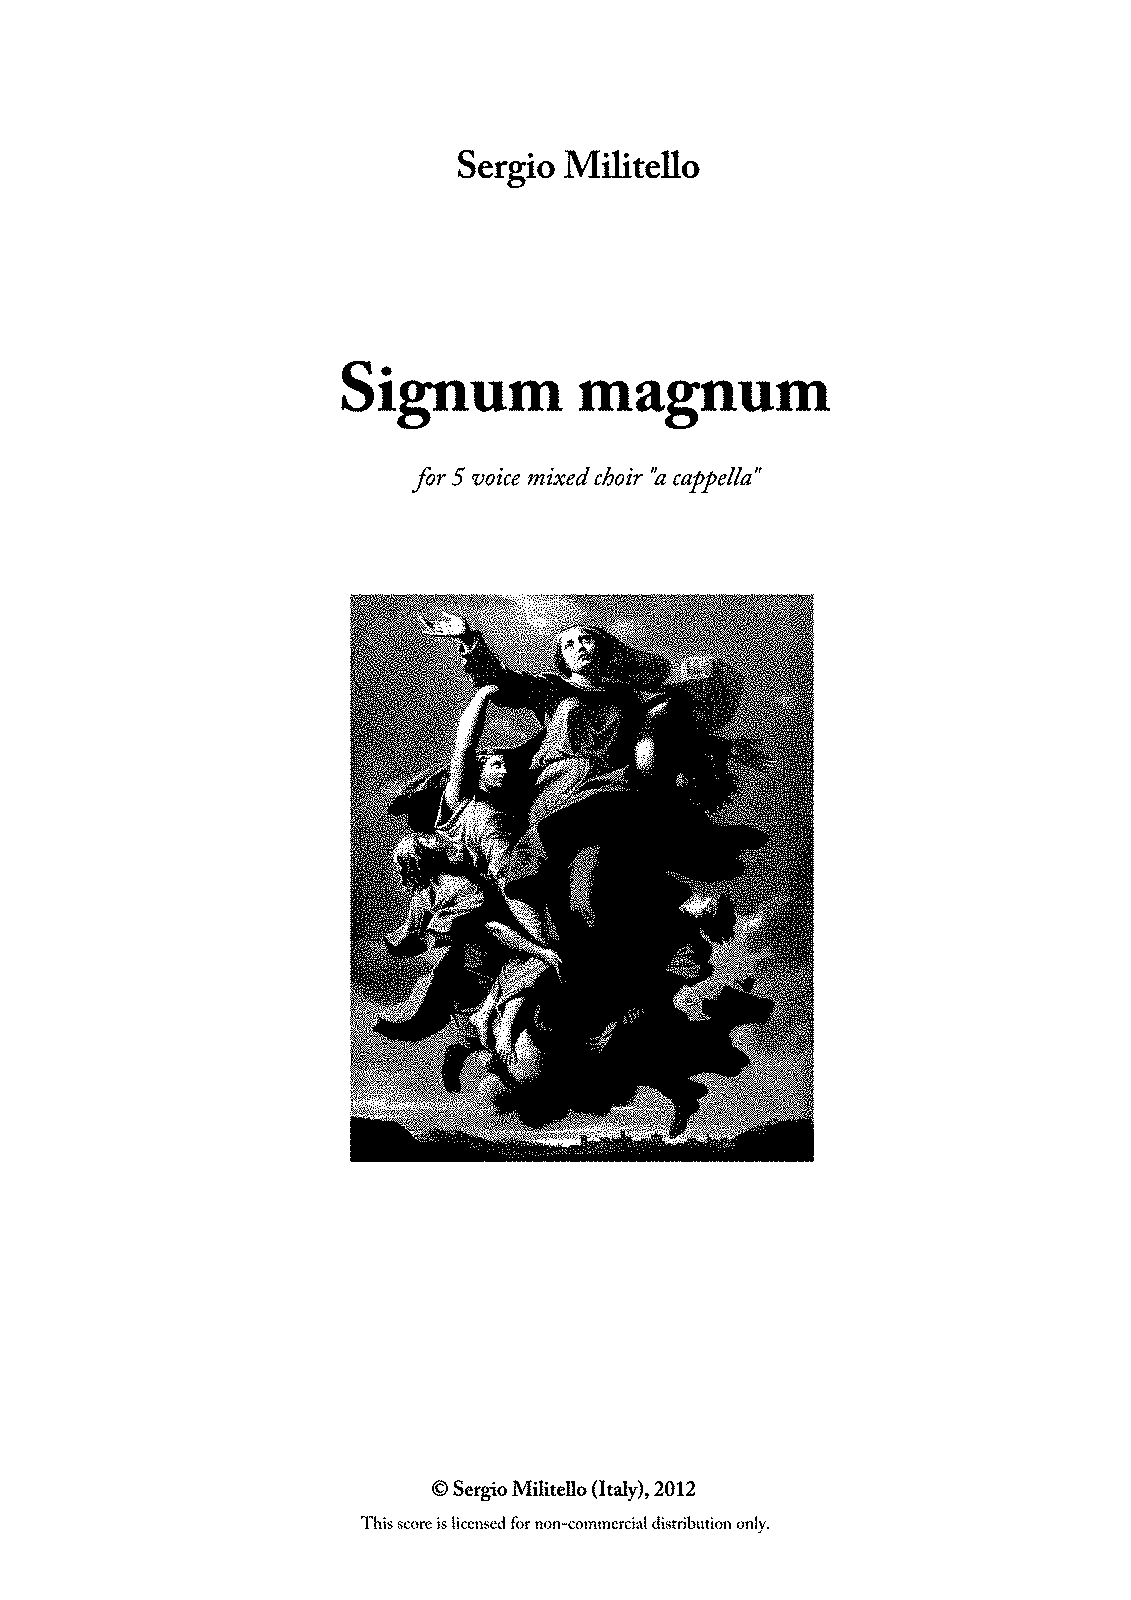 PMLP394401-Sergio Militello SIGNUM MAGNUM Motet for mixed choir.pdf